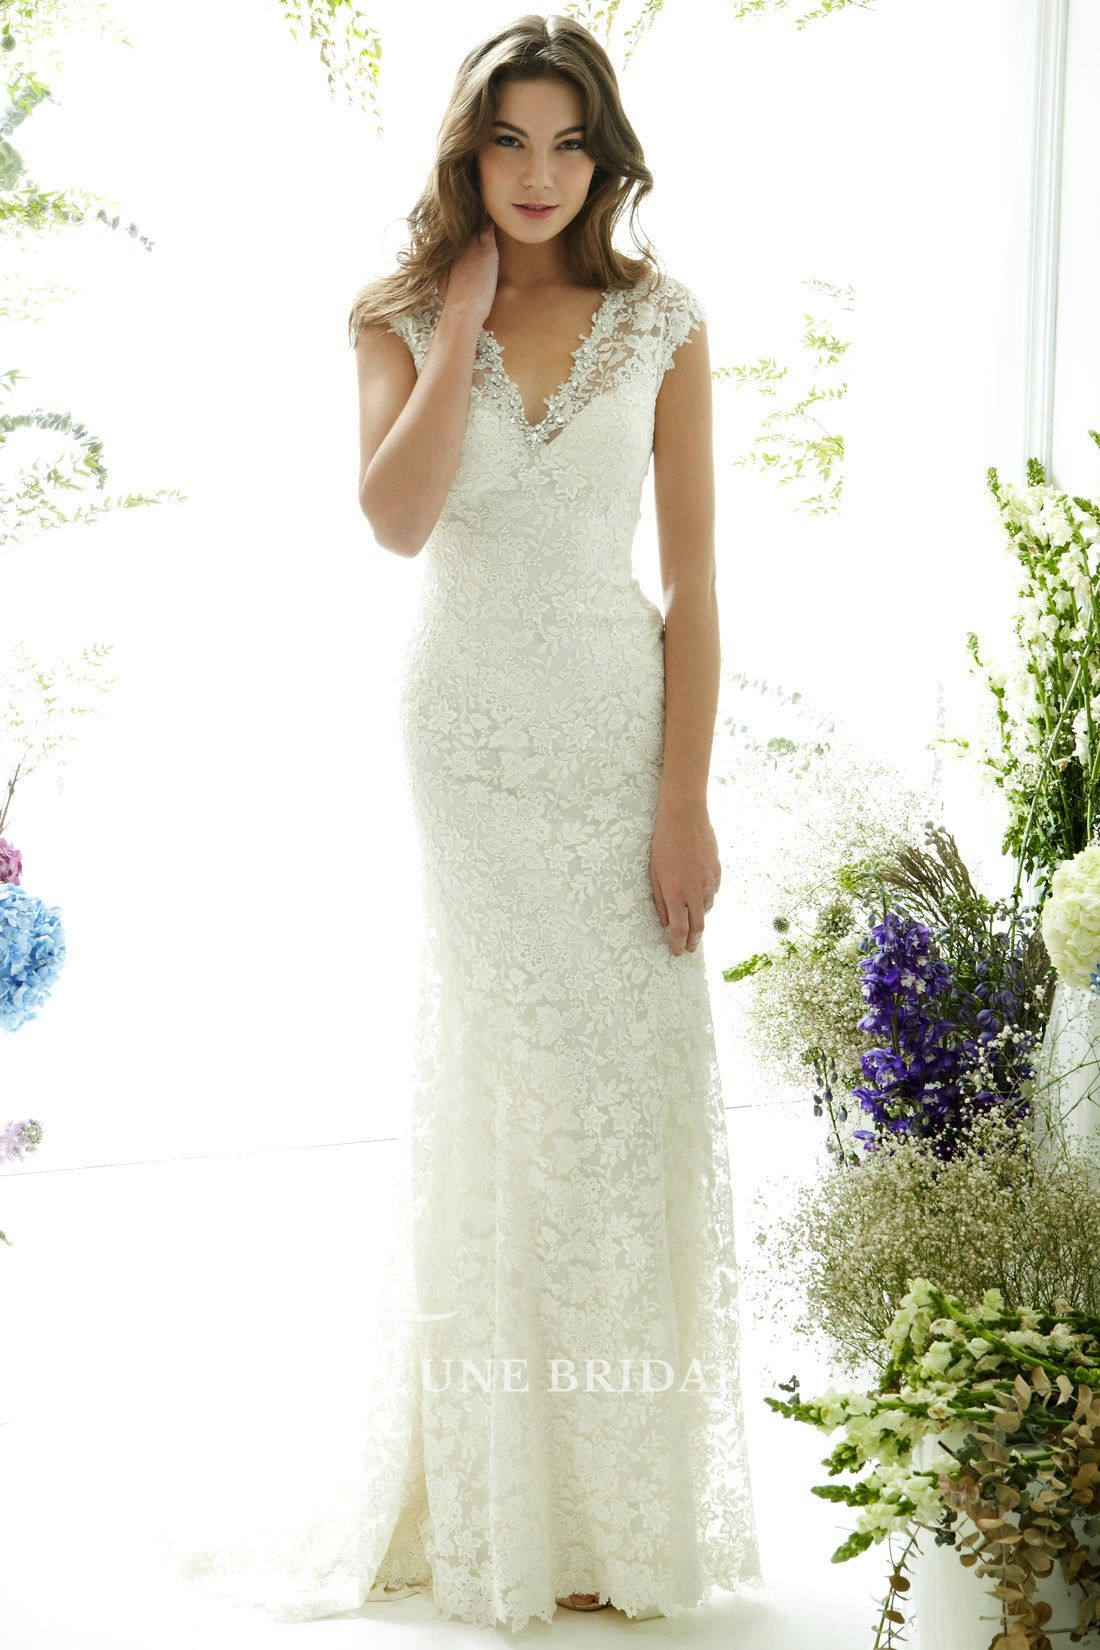 Maternity wedding dress with sleeves  FloorLength VNeck CapSleeve Lace Wedding Dress With Brush Train